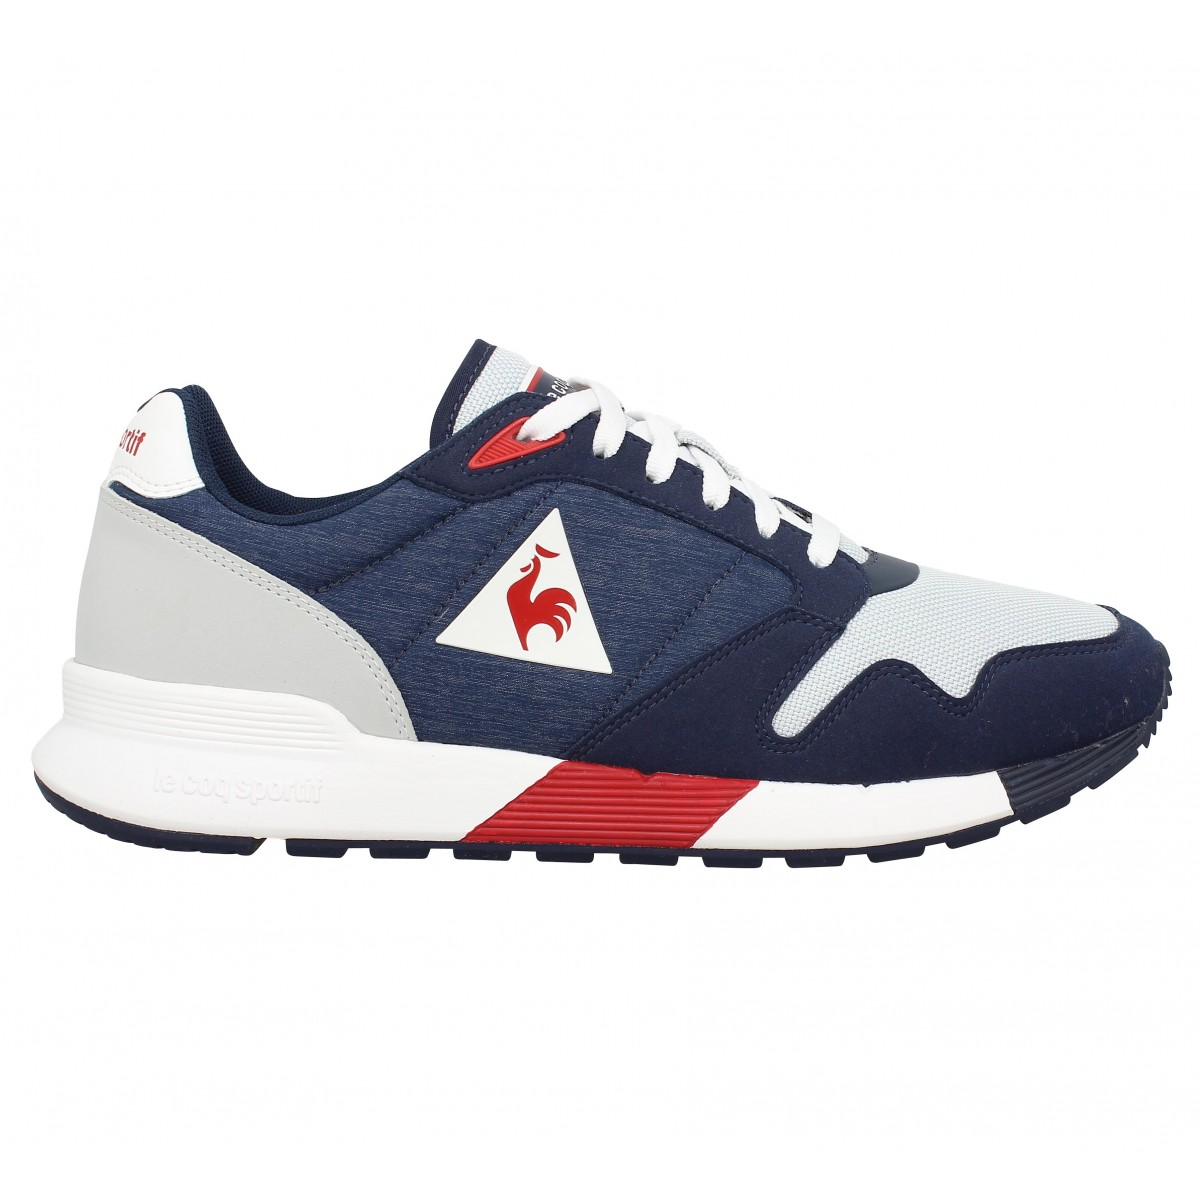 Le Coq Sportif Baskets basses Omega X Techlite Bleu denim Rtwl82e